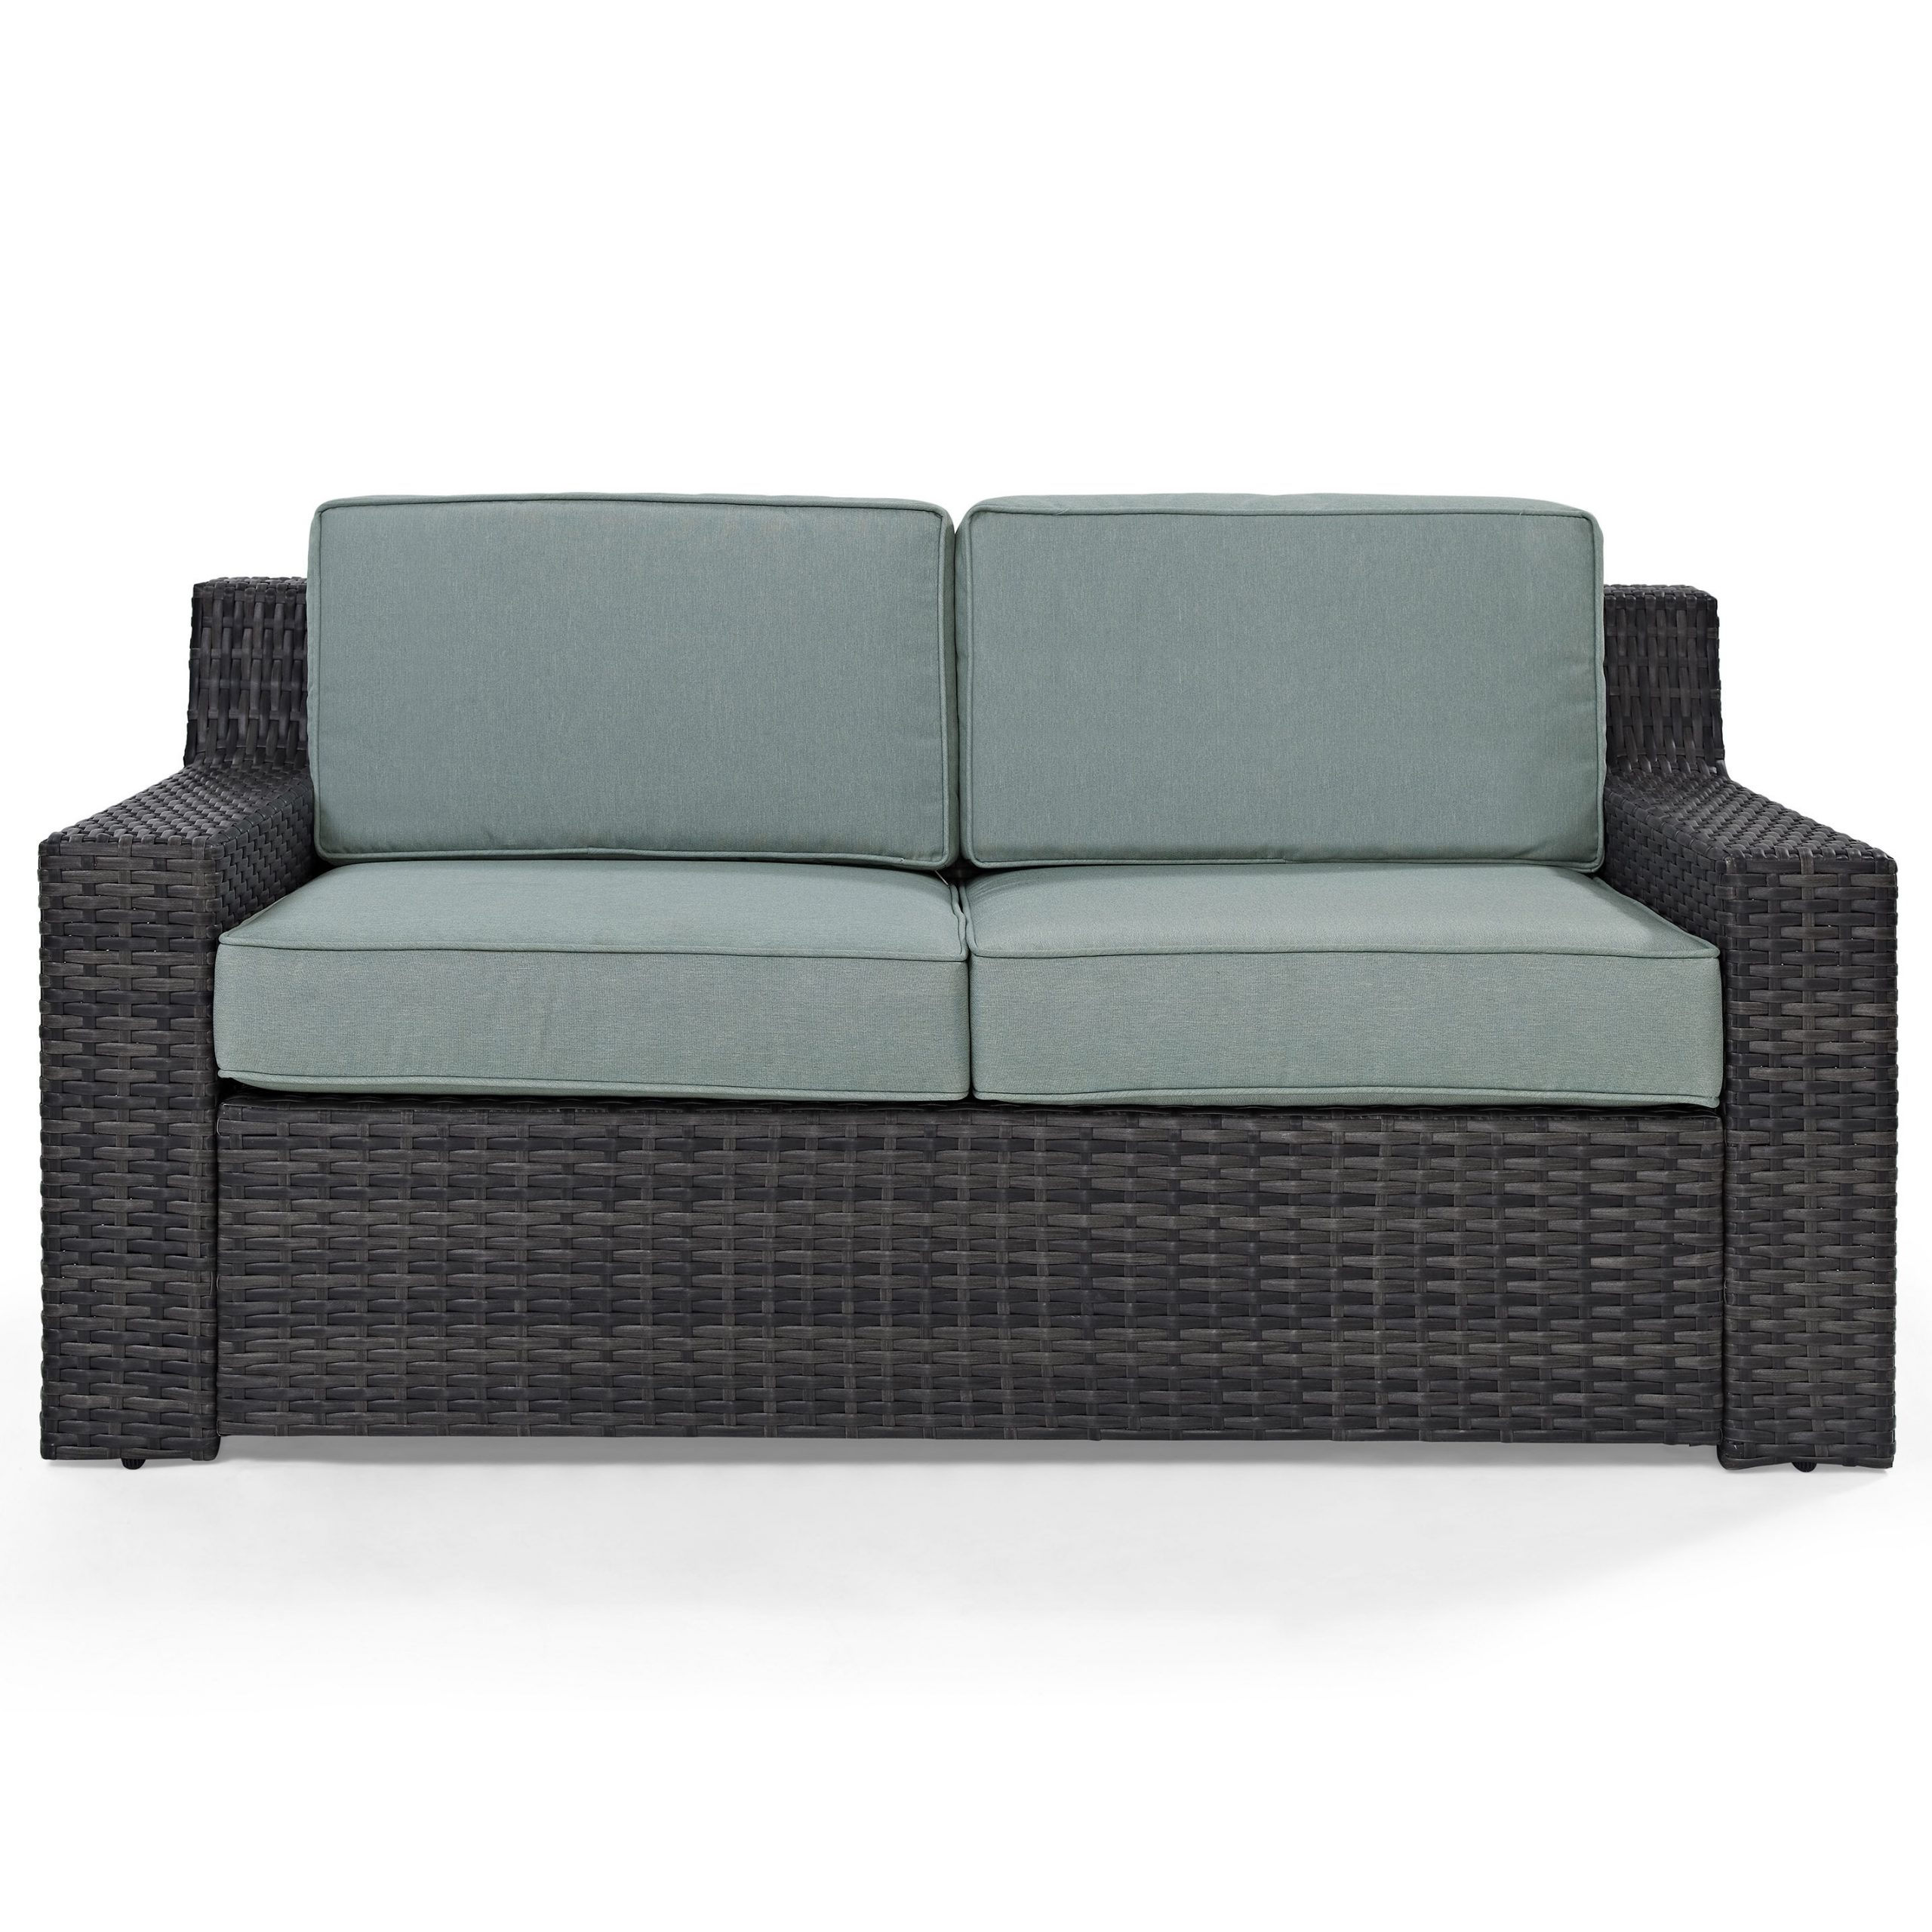 Linwood Loveseat With Cushions Within Well Known Furst Outdoor Loveseats With Cushions (View 10 of 25)